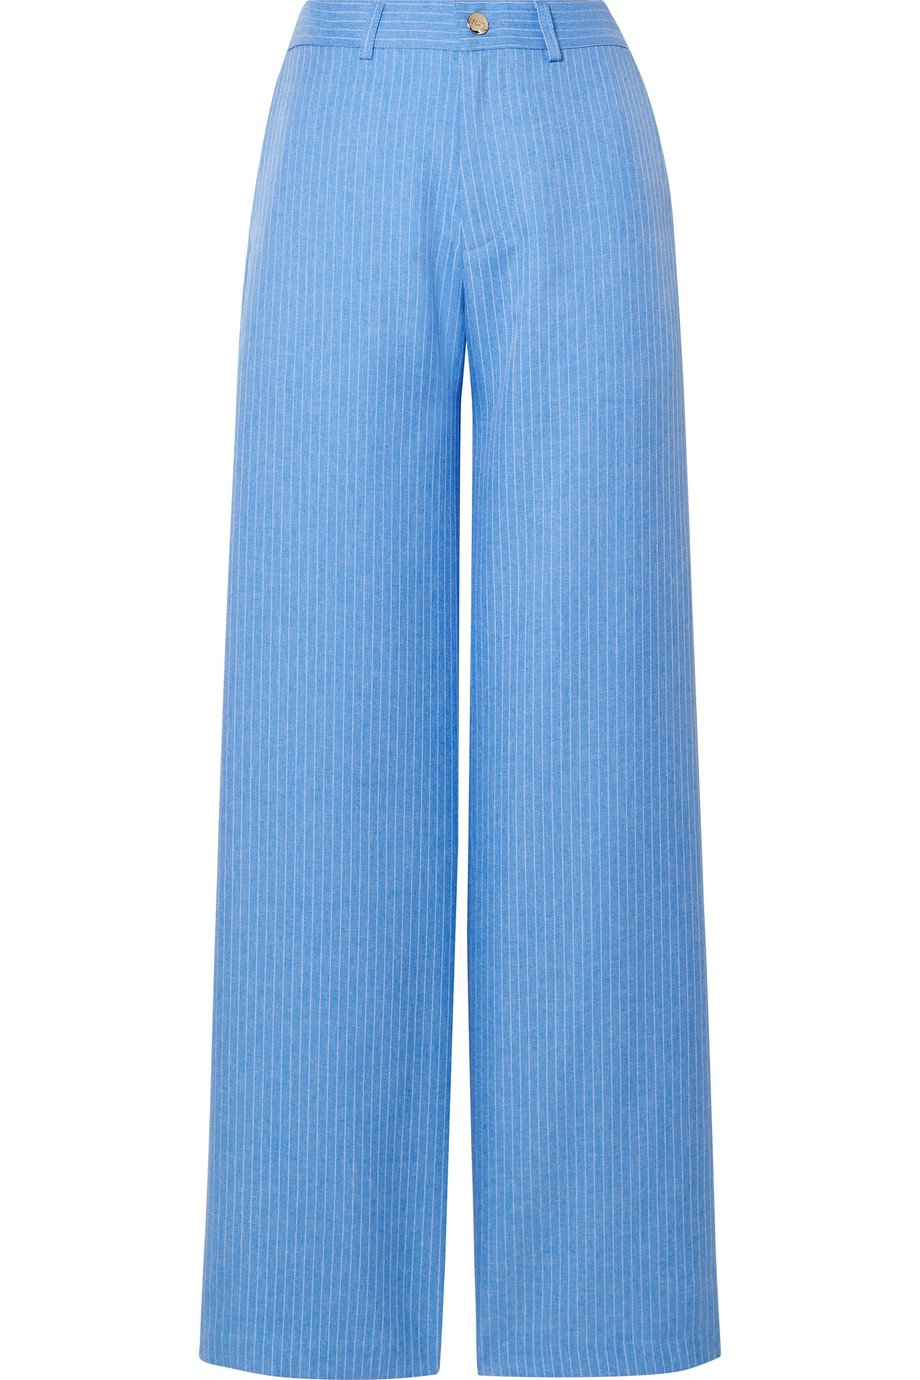 Maggie Marilyn | + NET SUSTAIN Go Getter pinstriped woven straight-leg pants | NET-A-PORTER.COM